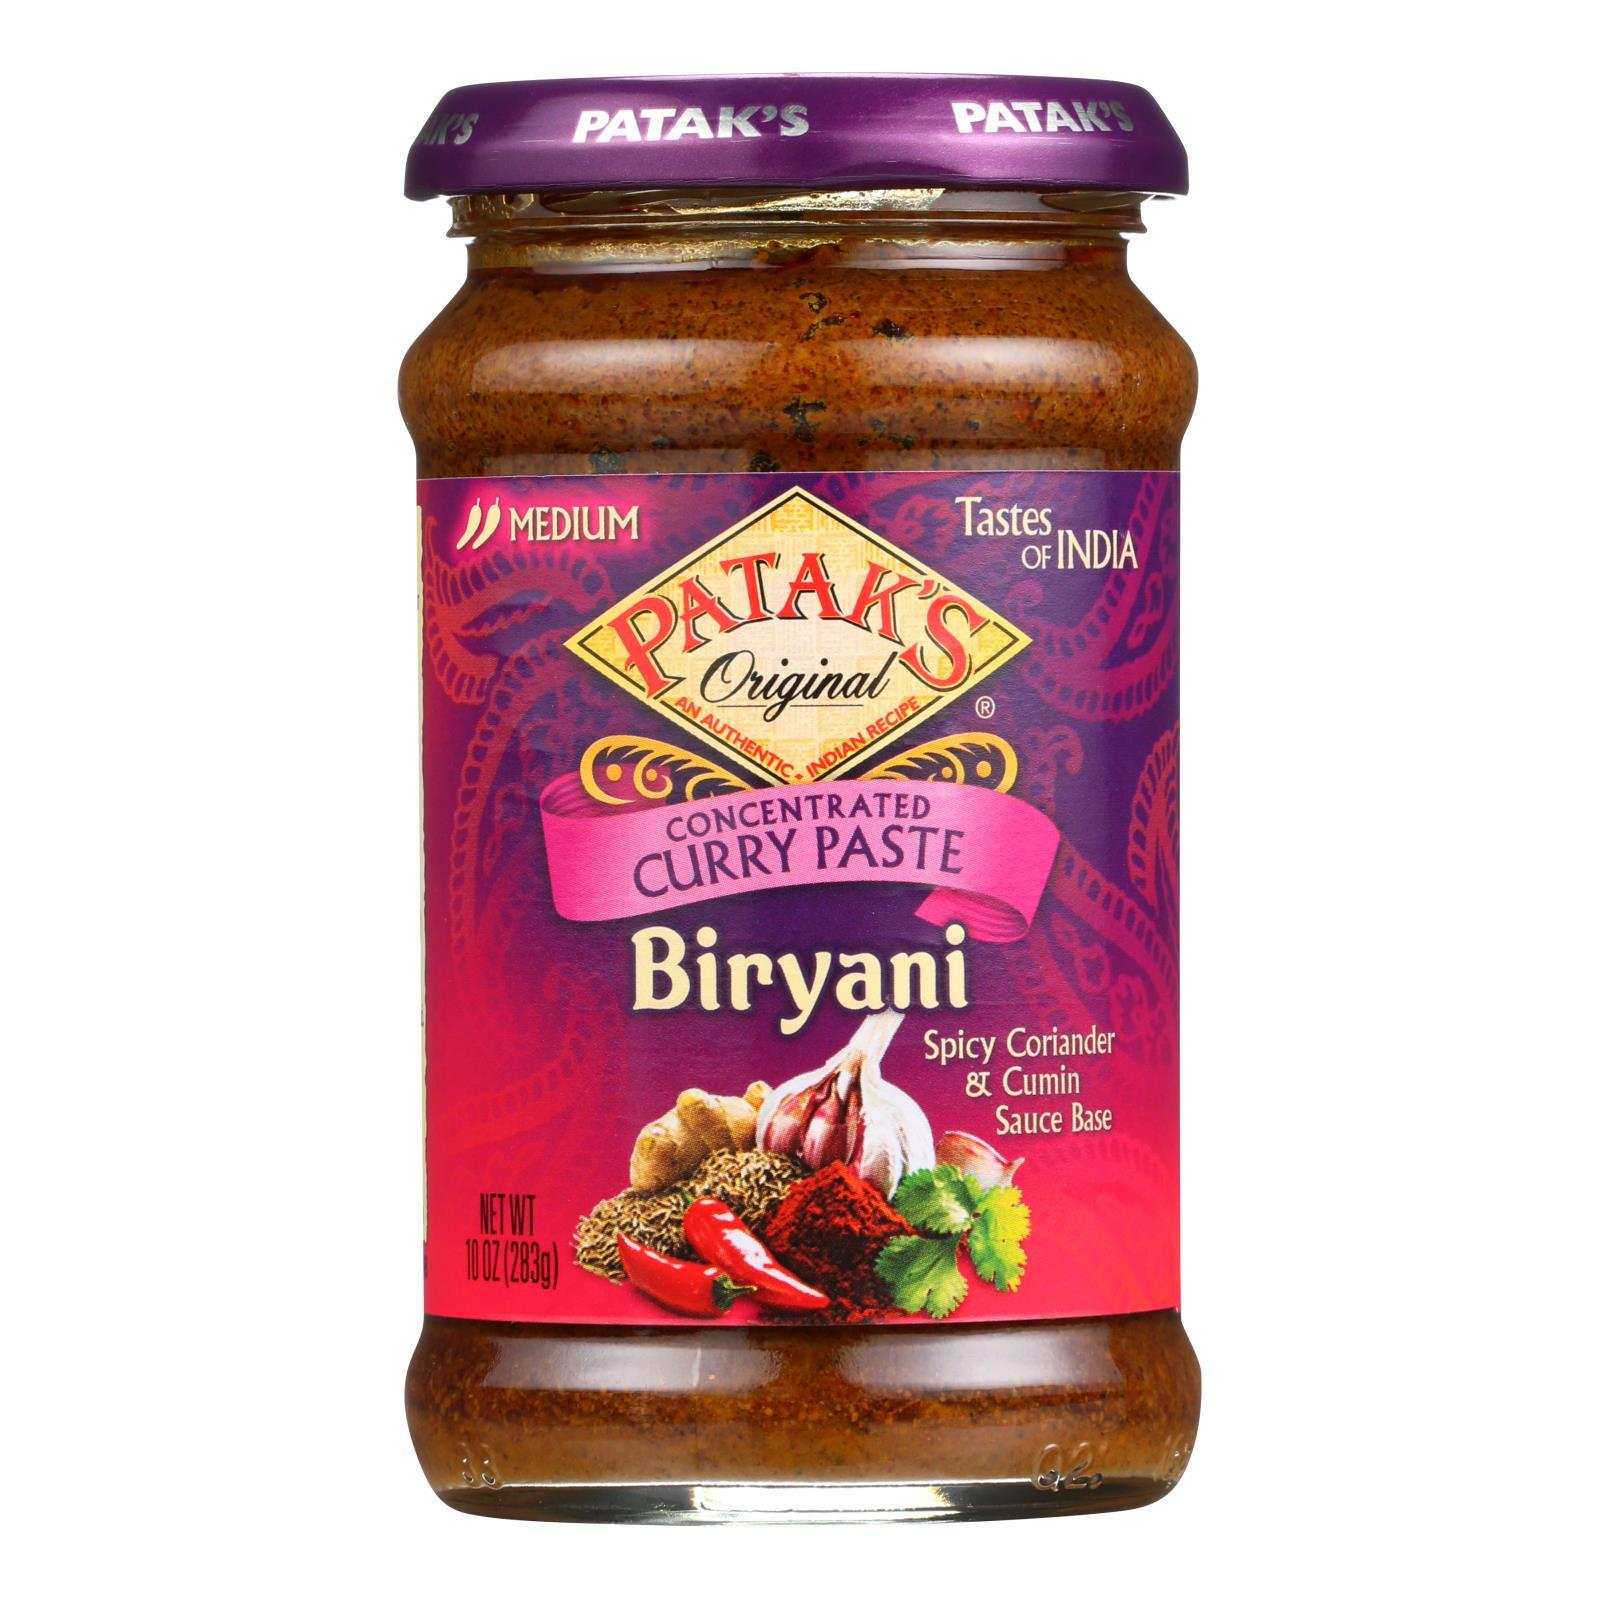 Pataks Curry Paste - Concentrated - Biryani - Medium - 10 Oz - Case Of 6 - BeeGreen